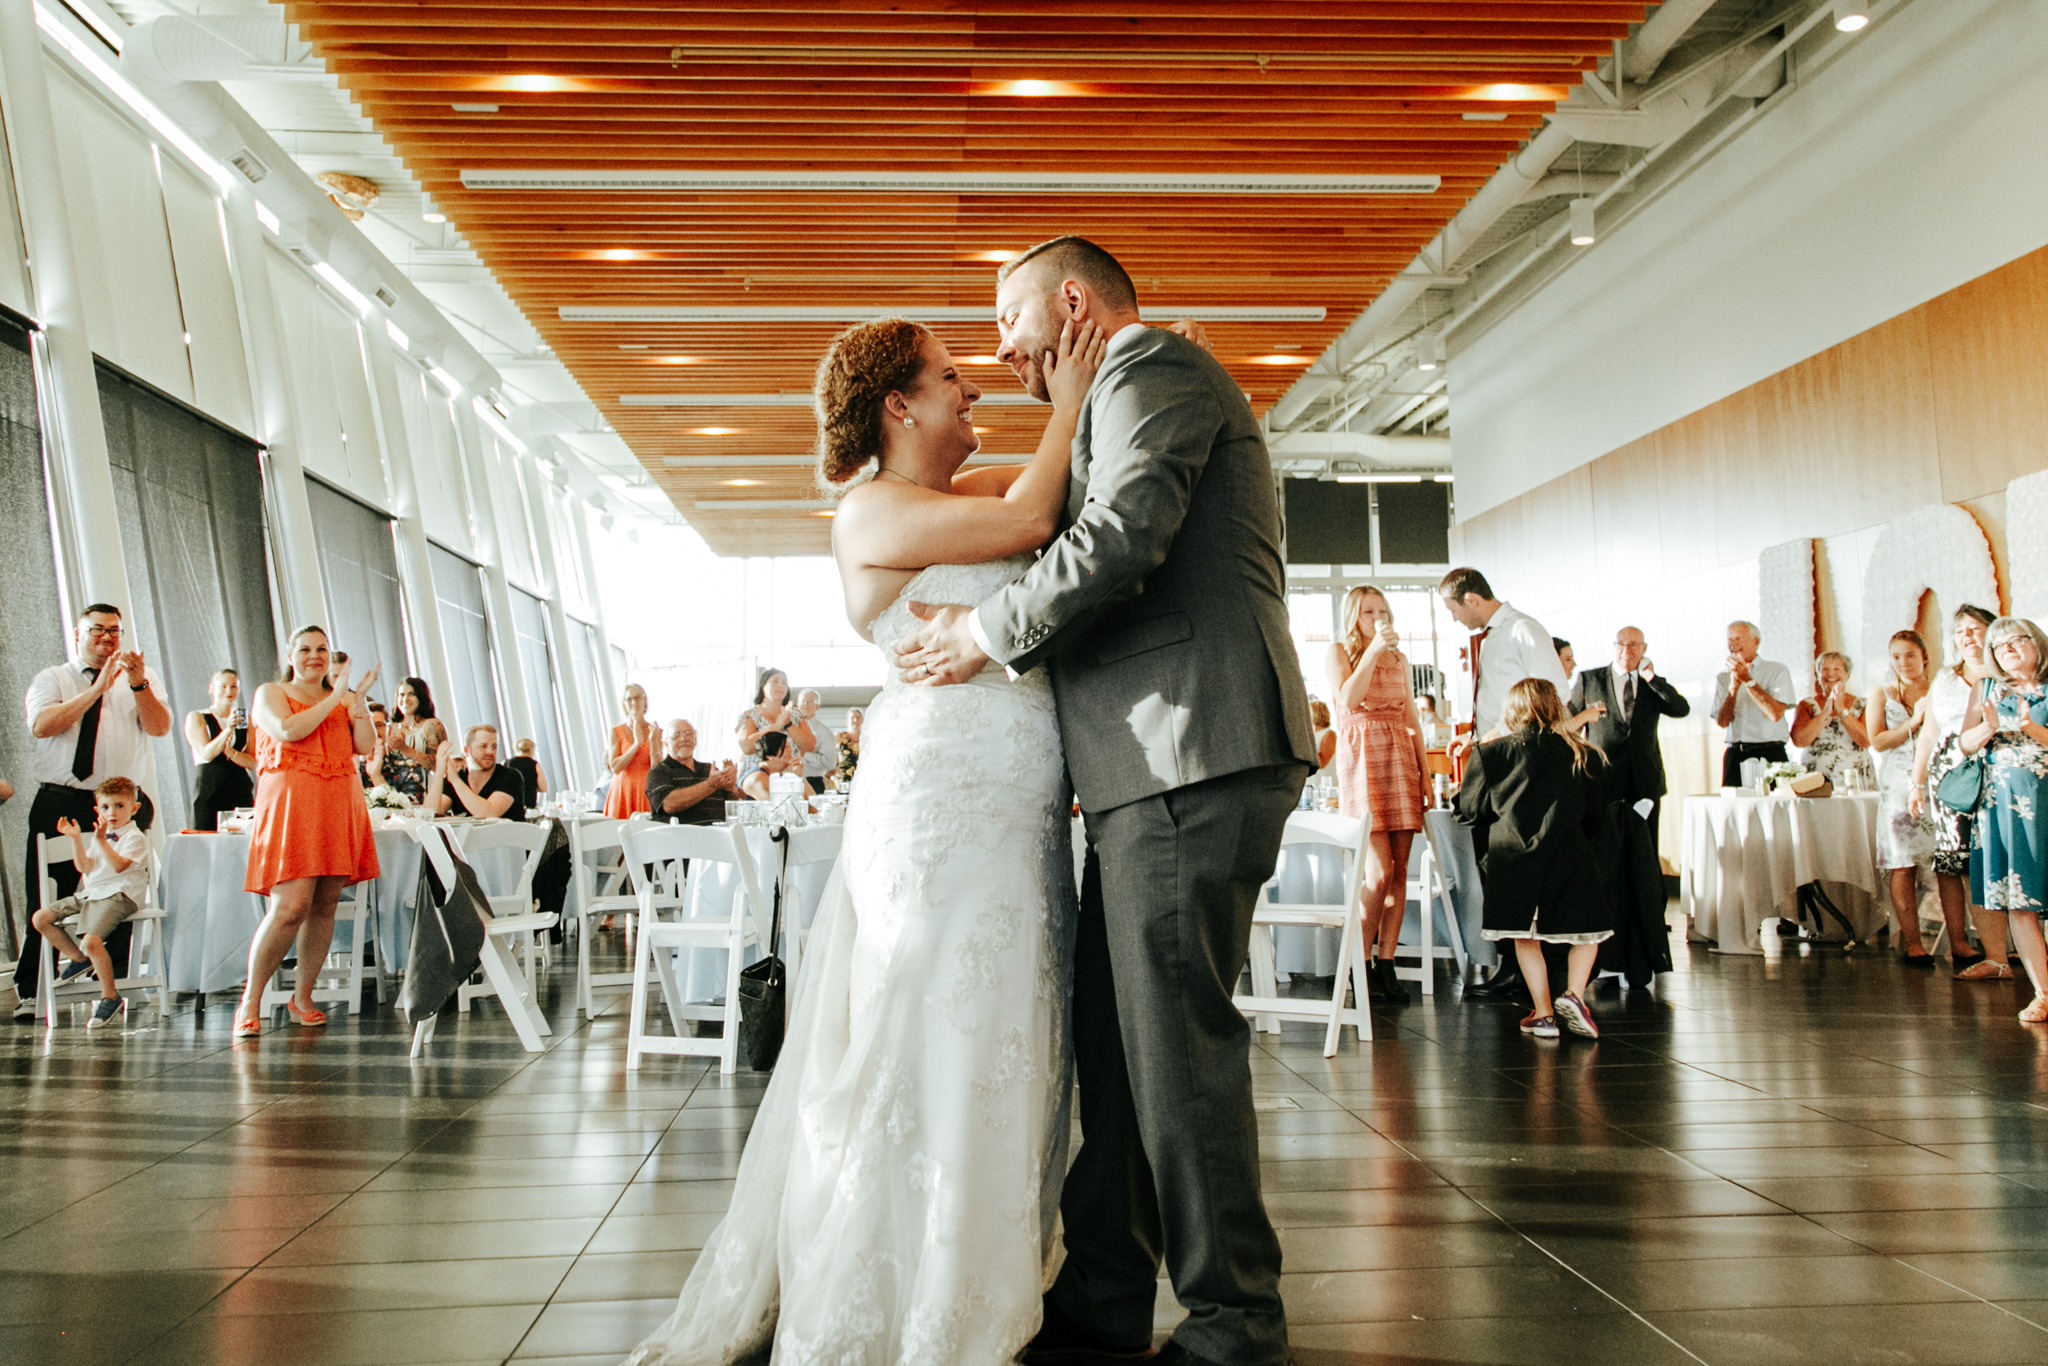 lethbridge-wedding-photographer-love-and-be-loved-photography-trent-danielle-galt-reception-picture-image-photo-206.jpg